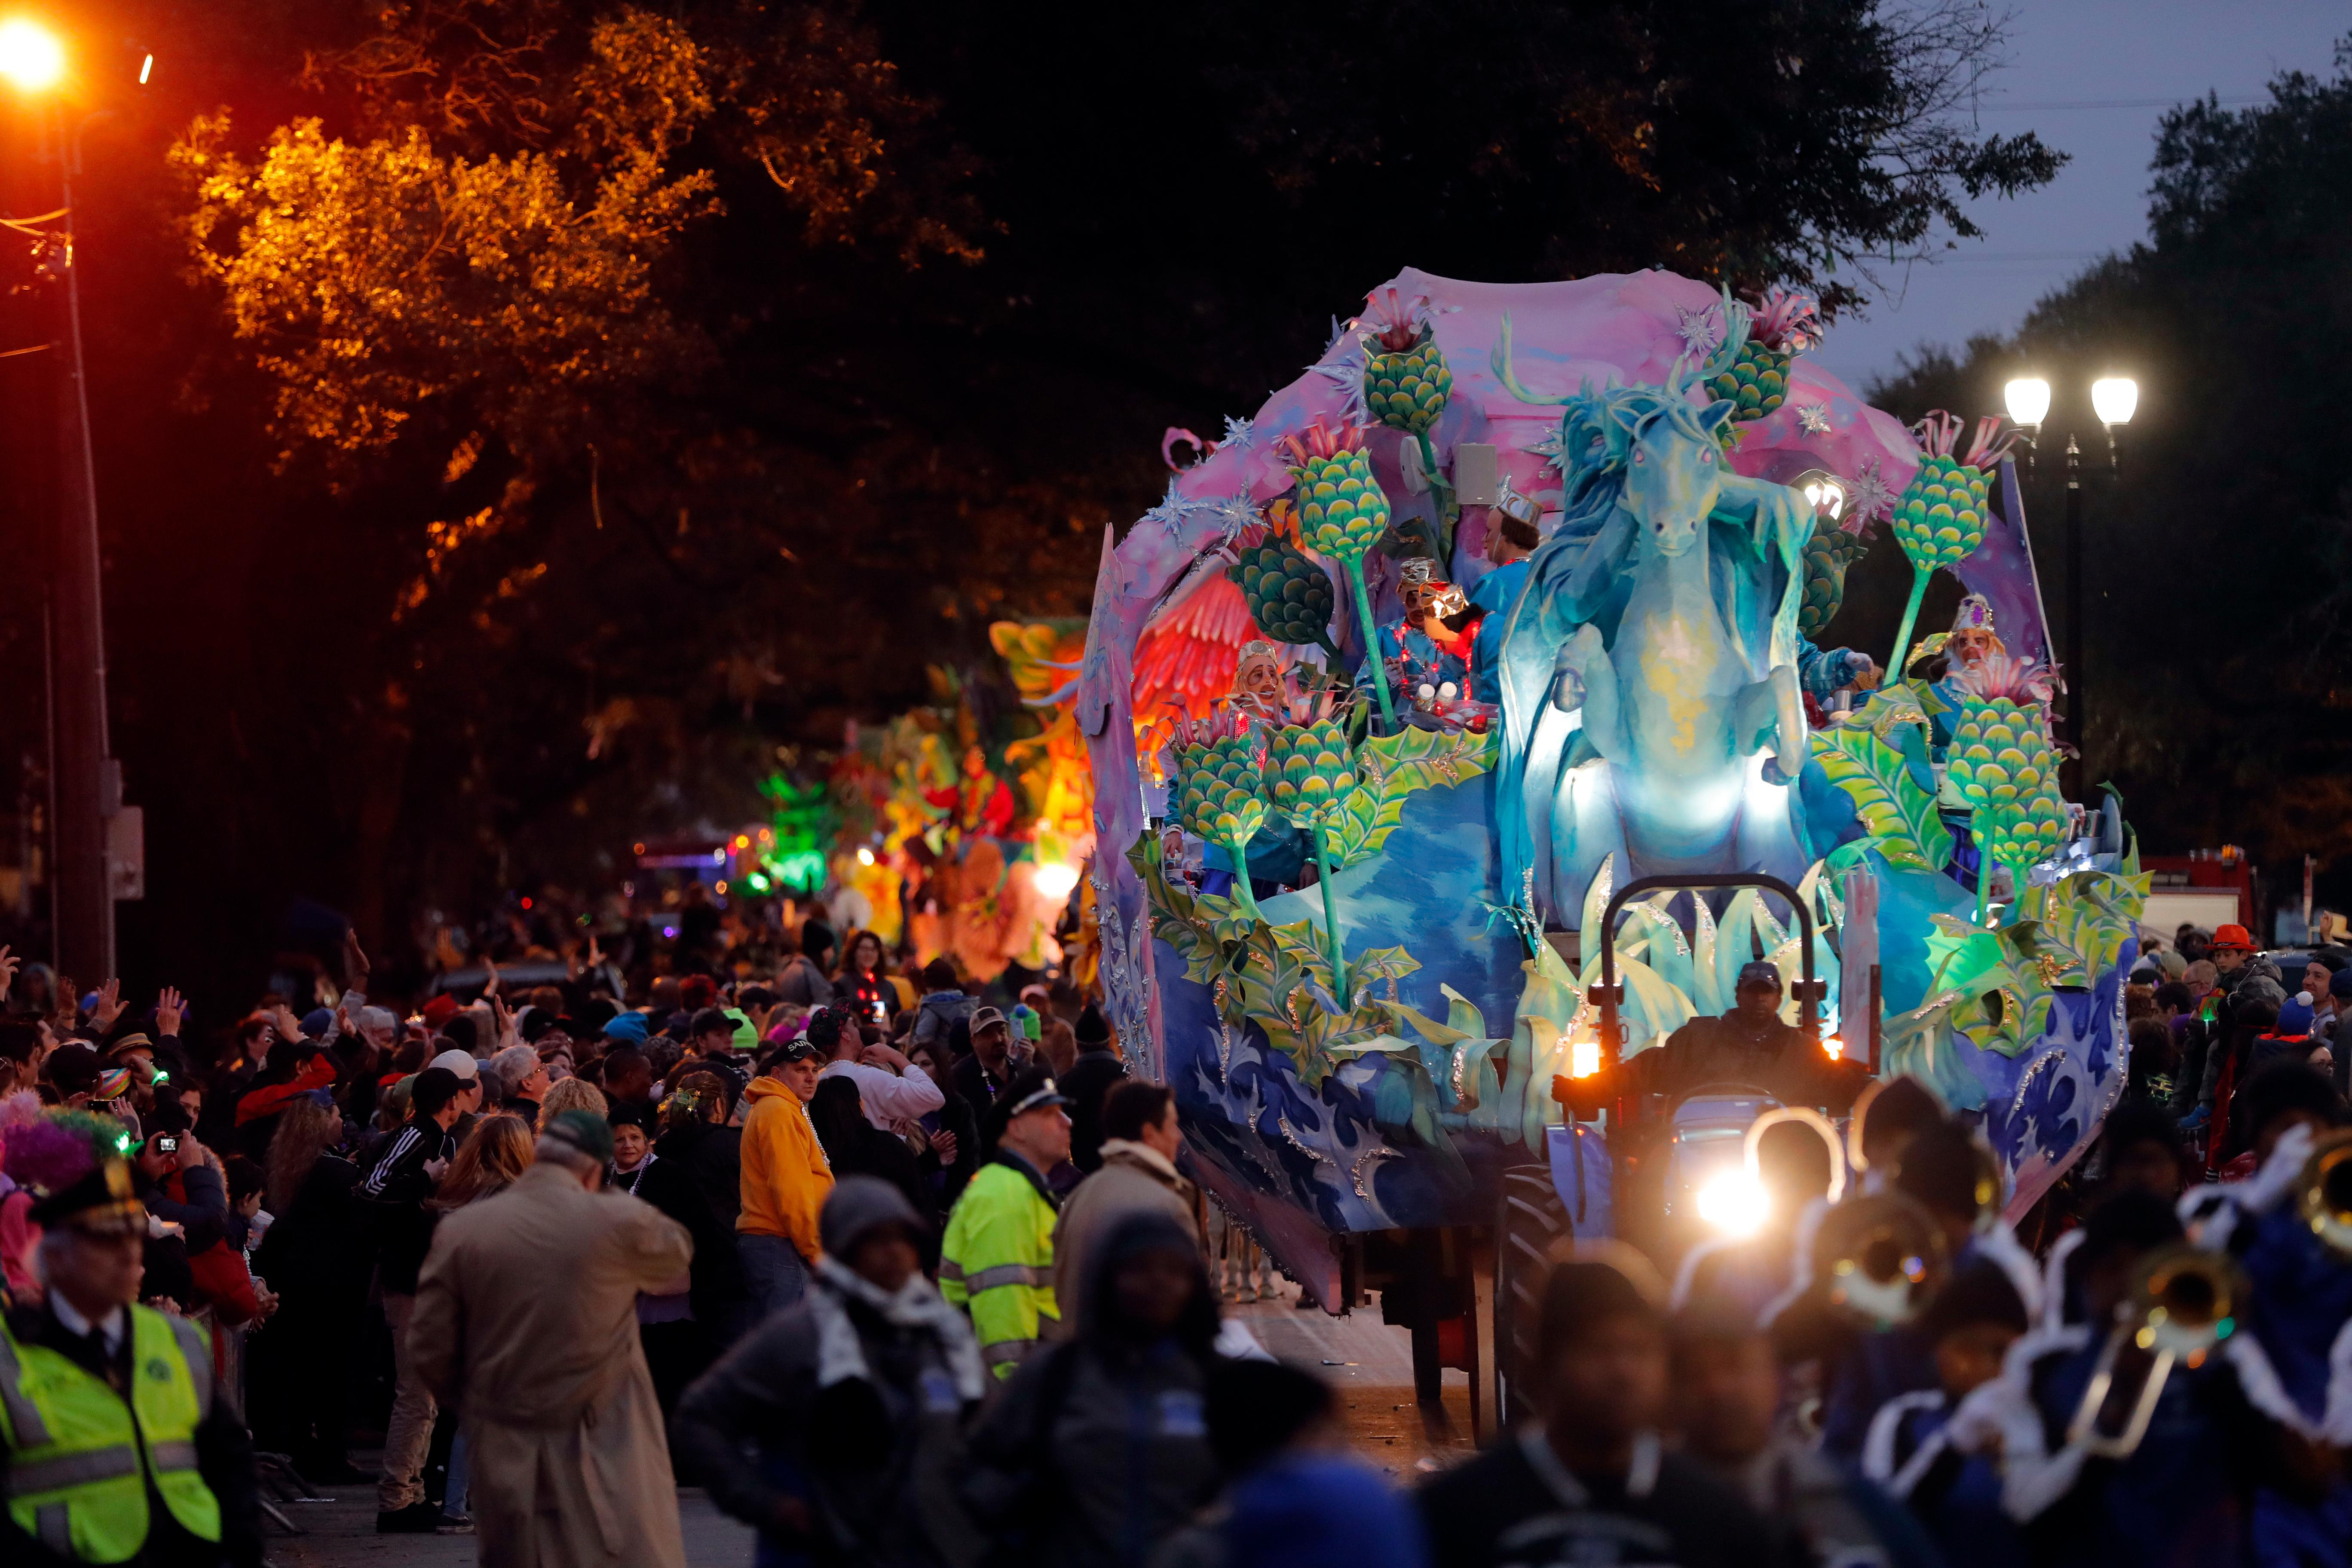 The Krewe of Orpheus rolls in New Orleans, Monday, Feb. 12, 2018. Tens of thousands of revelers are expected on New Orleans streets for parades and rowdy fun as Mardi Gras caps the Carnival season in a city with a celebration of its own, its 300th anniversary. (AP Photo/Gerald Herbert)